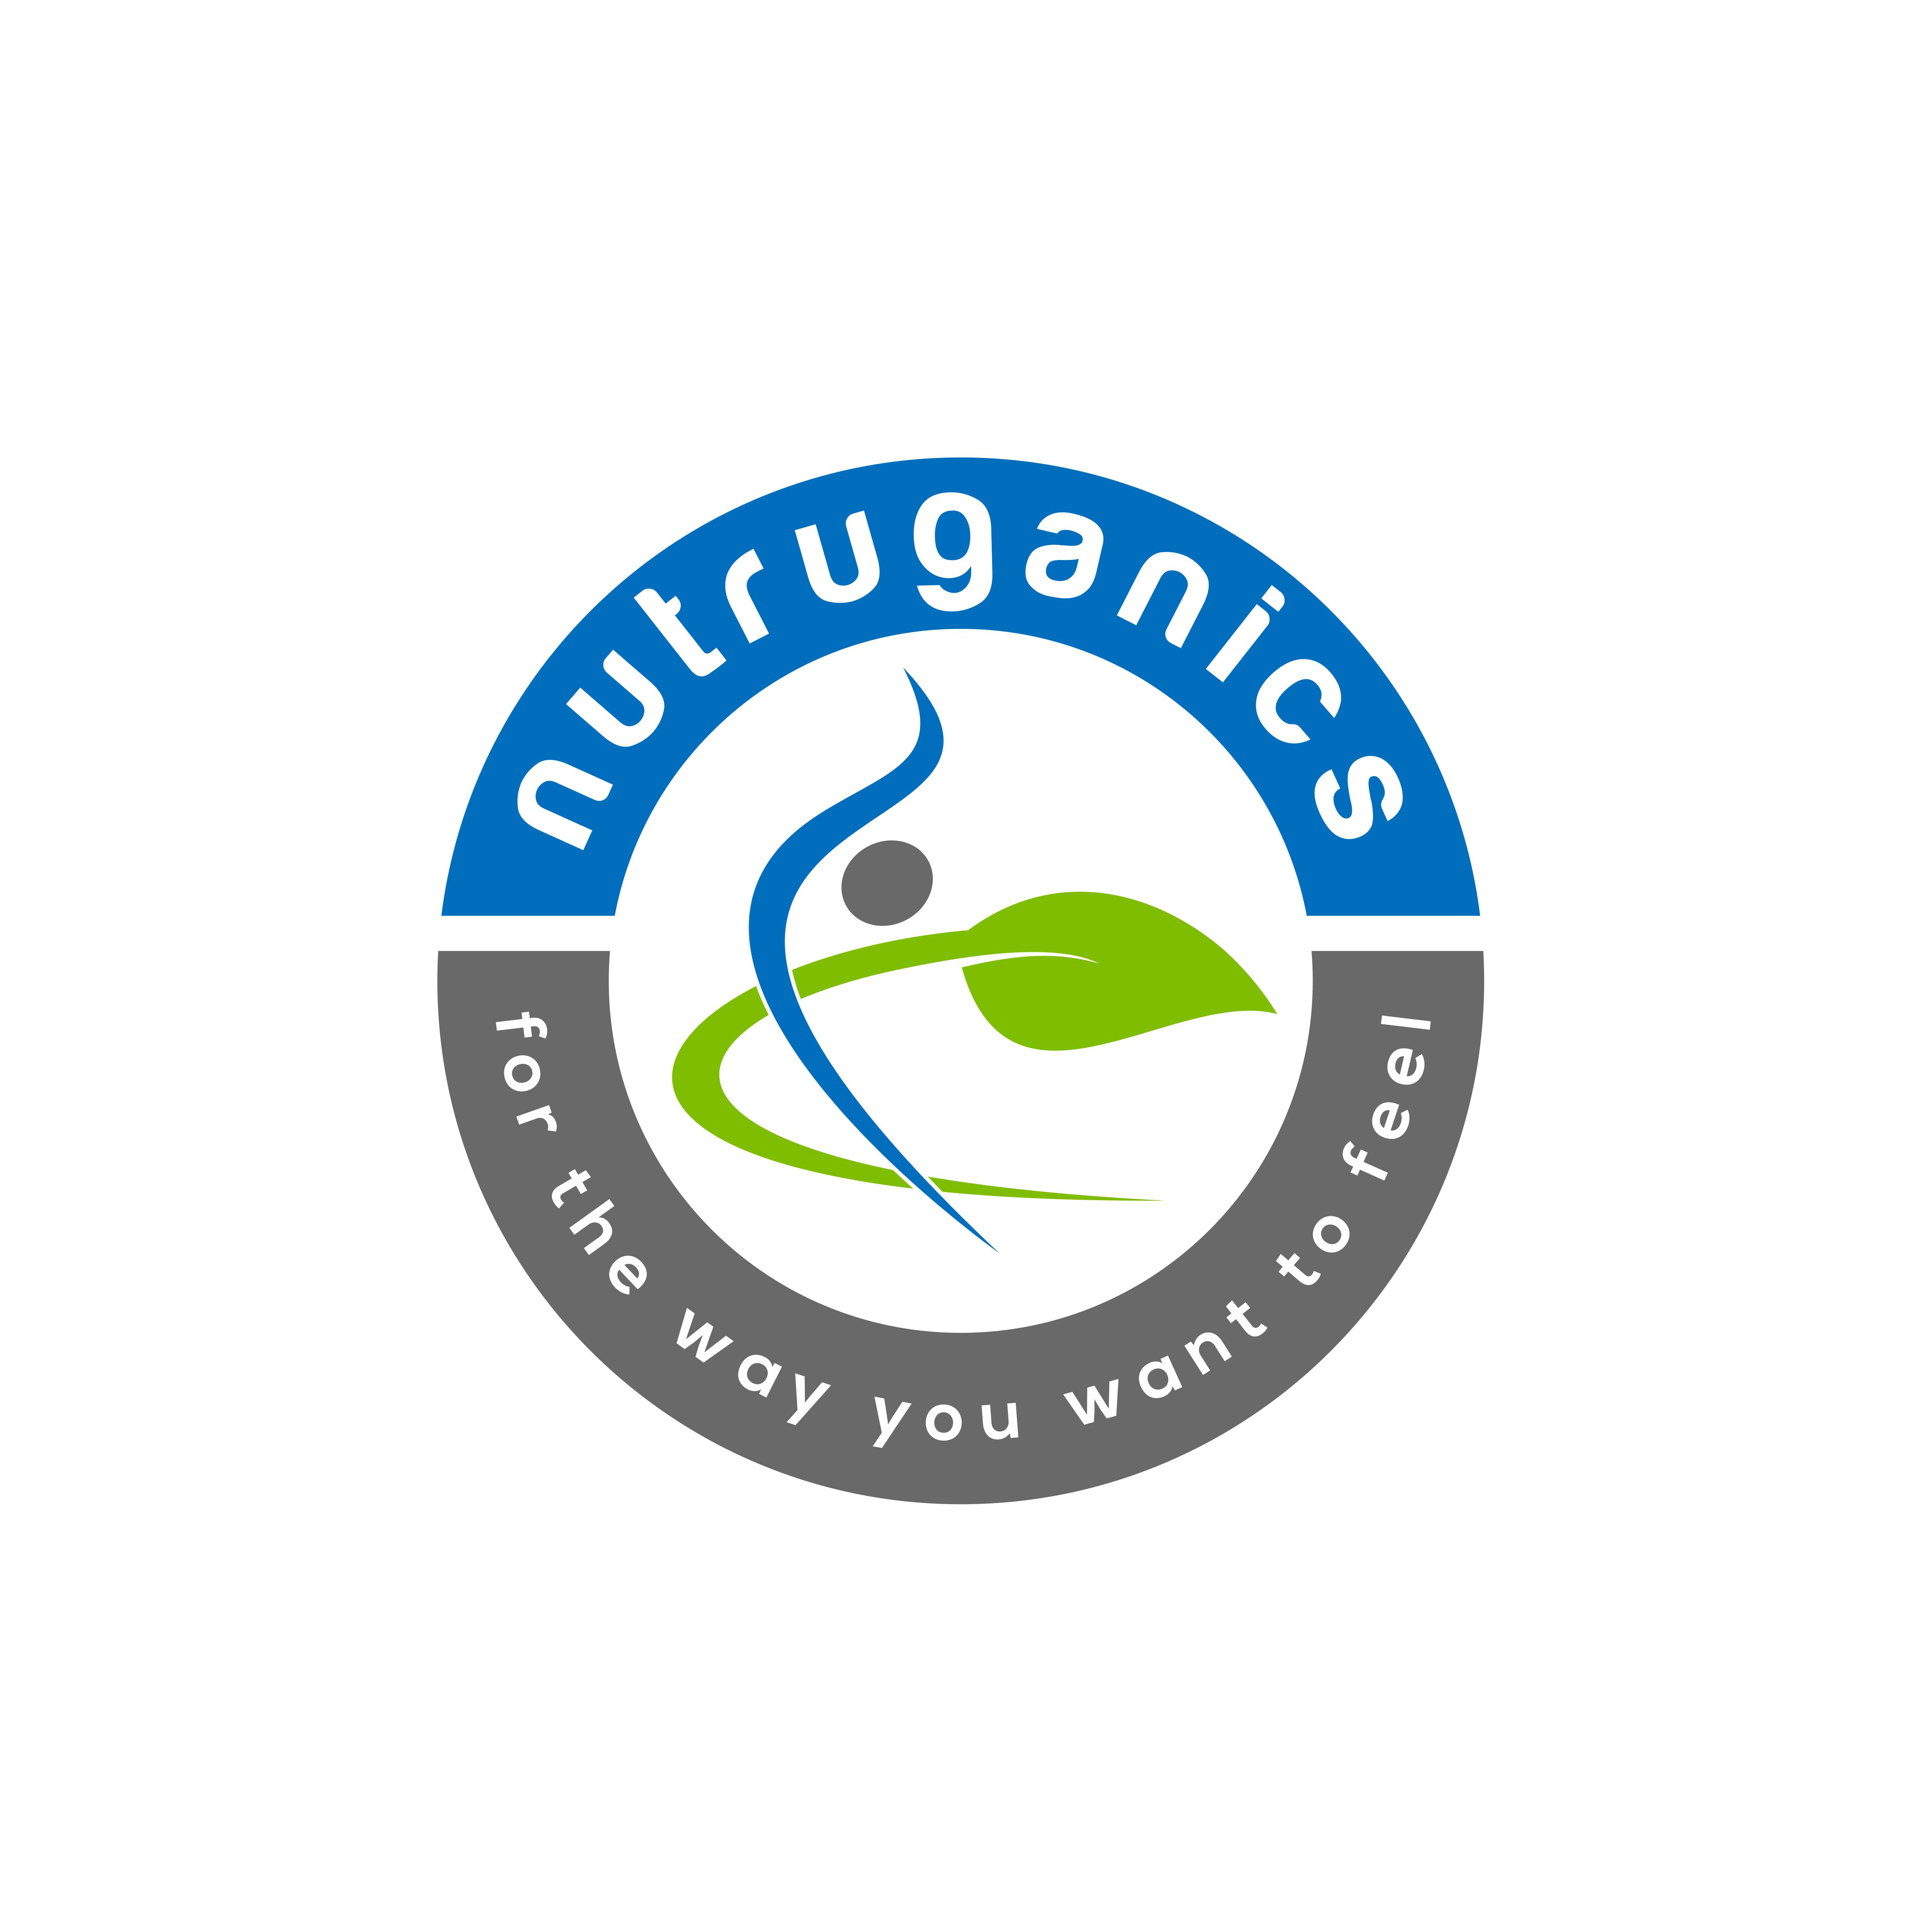 Create a vibrant, colorful, three dimensional-looking logo for a health and wellness company!